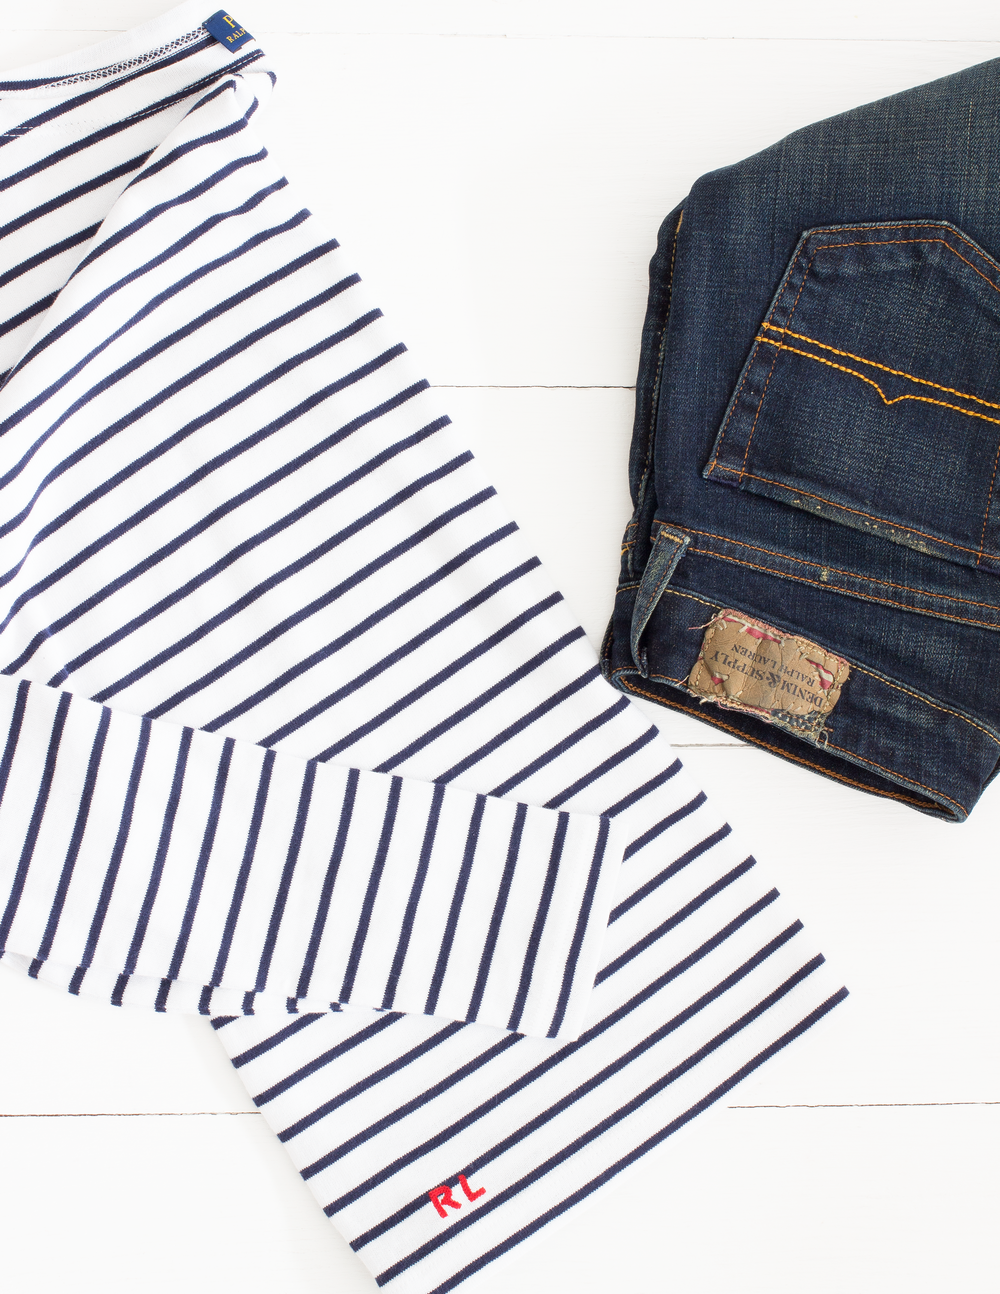 THE STRIPES - Of course, I had to start with the classic striped option because it's always a staple in my wardrobe no matter what the season. Pairing a classic fit striped top with these jeans gives them a little bit more a laid-back look. But then pairing them with loafers, a leather jacket or even a blazer can smarten things up a little whilst still keeping that relaxed fit.